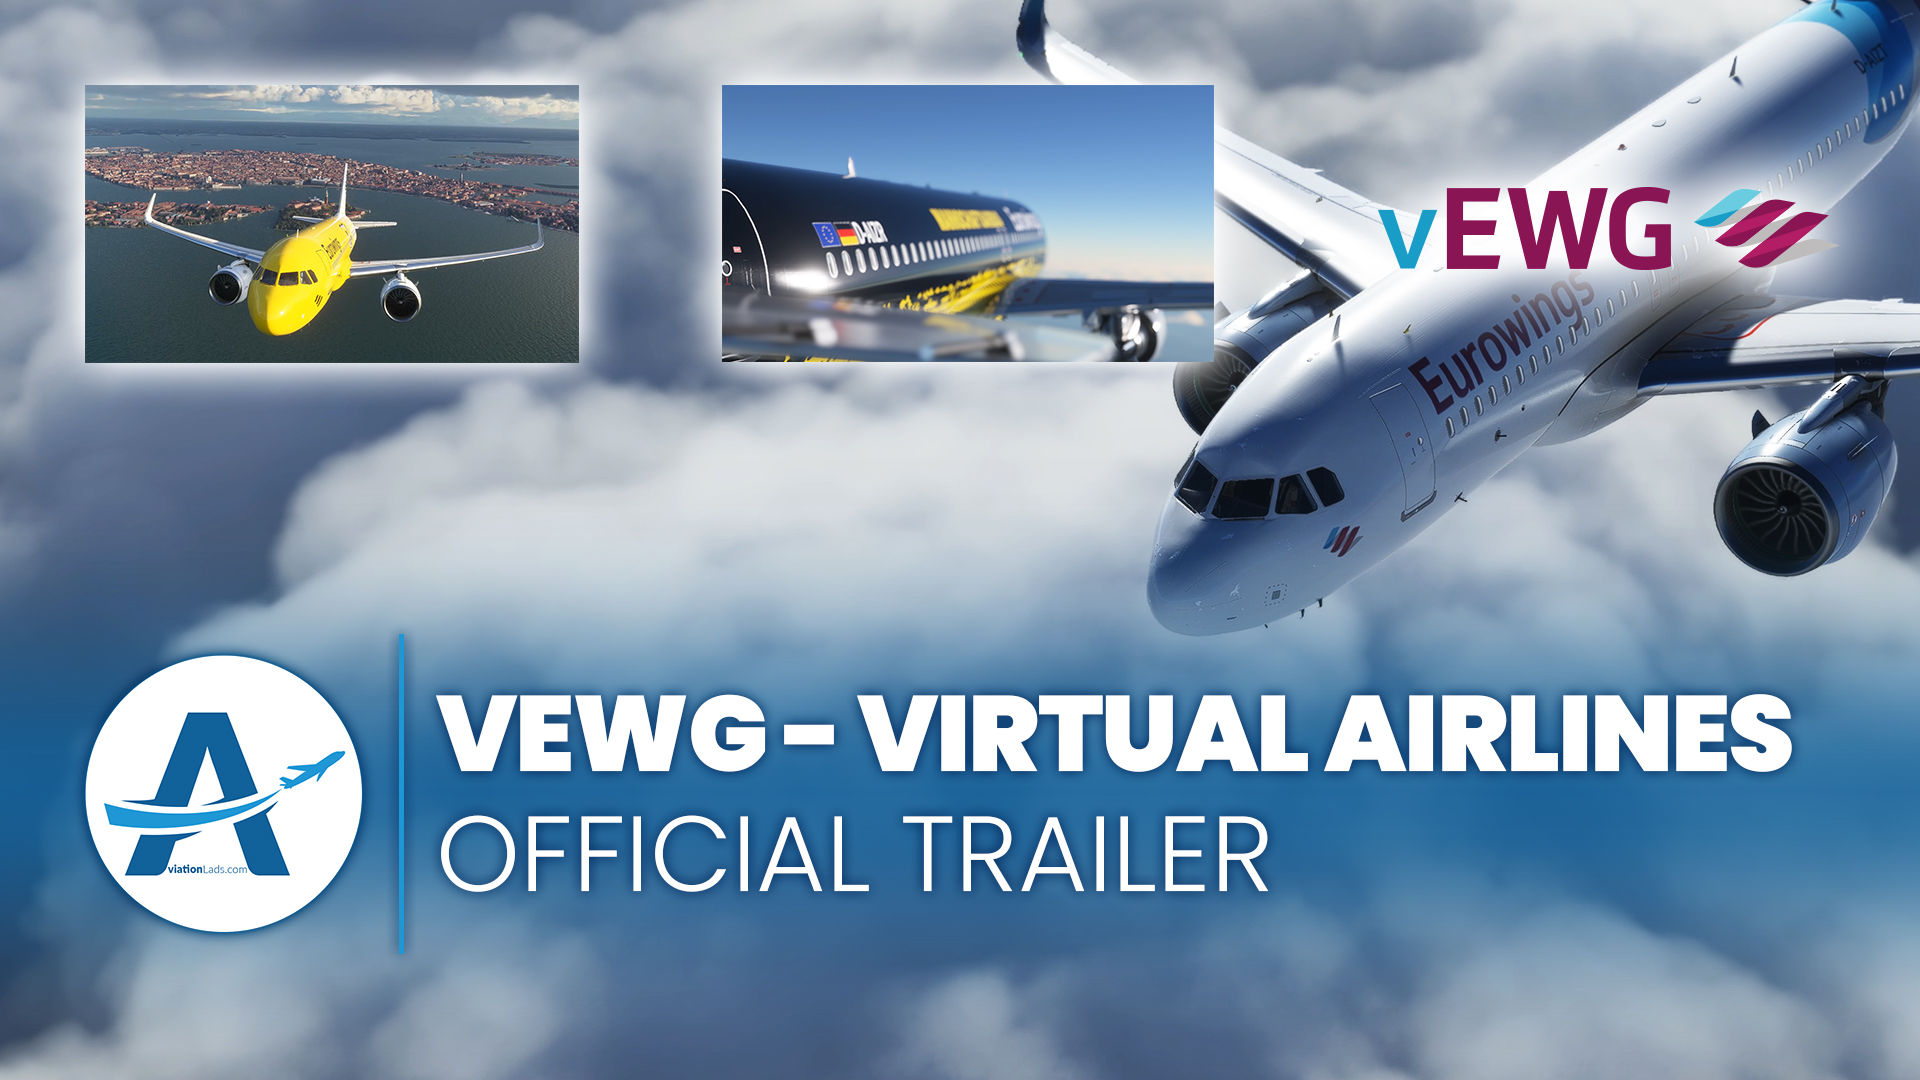 [TRAILER] vEWG Virtual Airlines